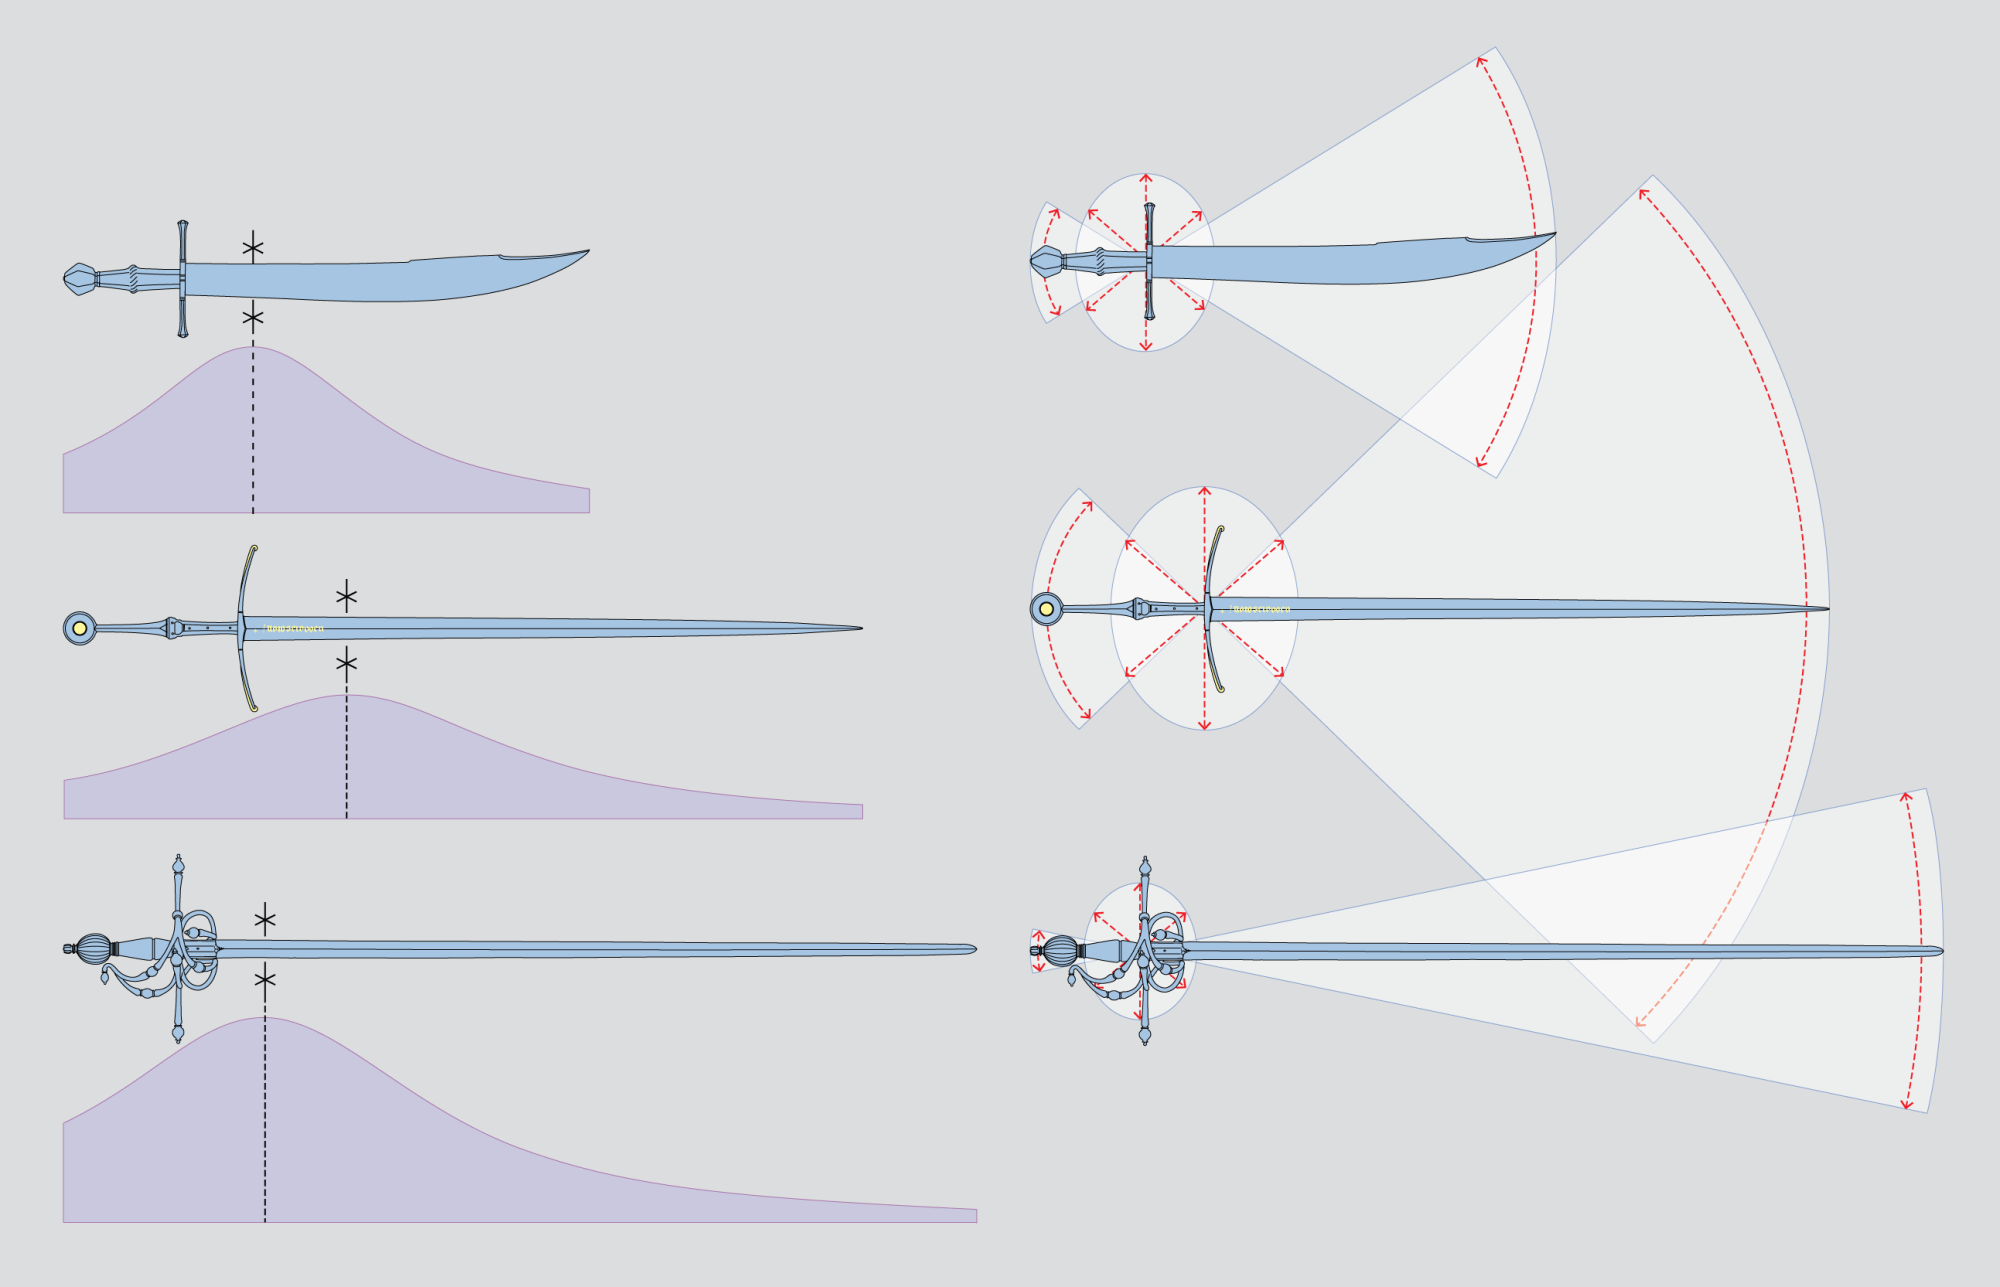 hight resolution of effective mass curves and agility diagram of three very different swords